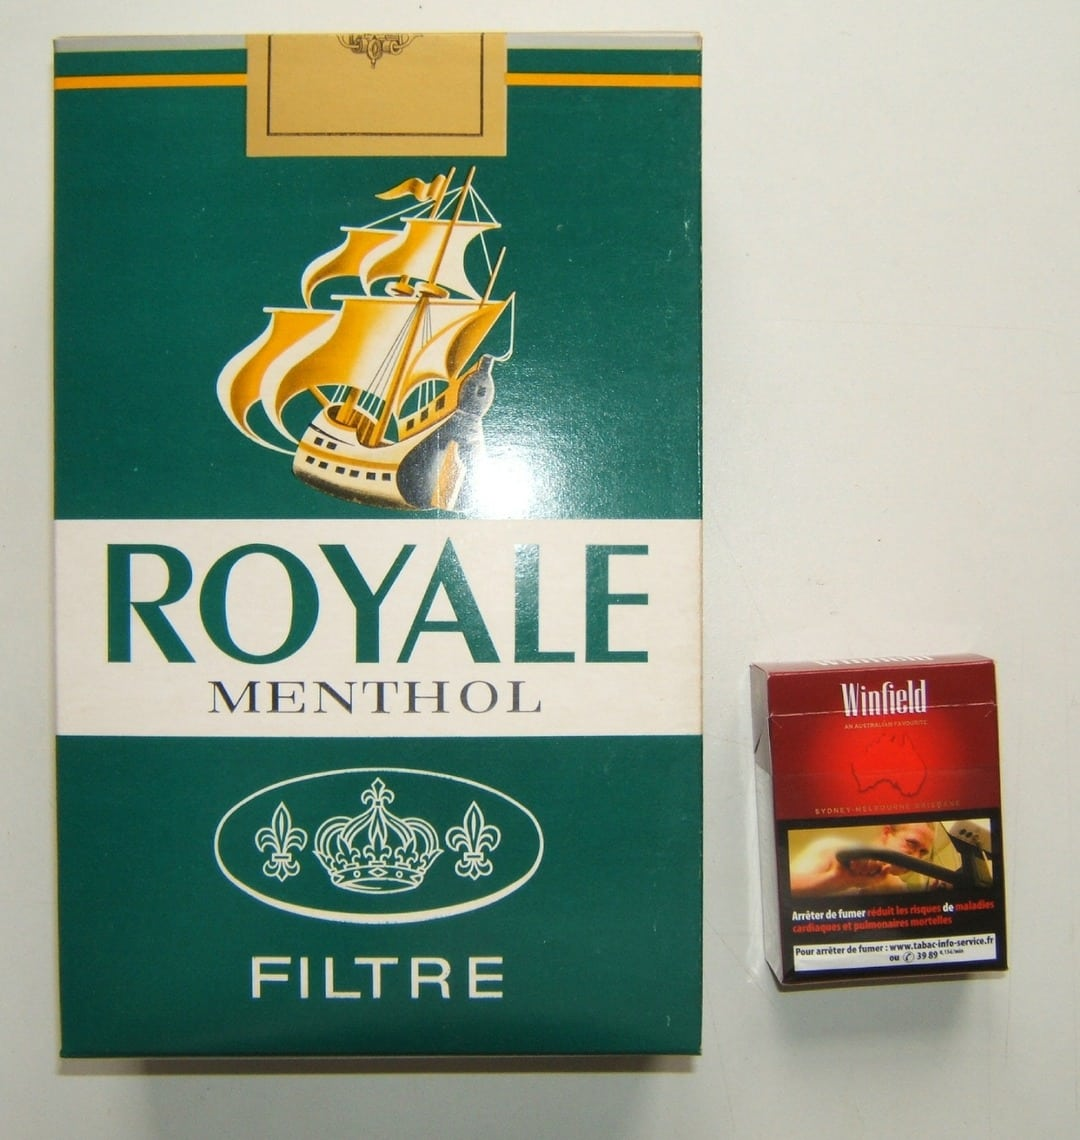 gros paquet de cigarettes factice publicite bureau de tabac royal menthol ebay. Black Bedroom Furniture Sets. Home Design Ideas